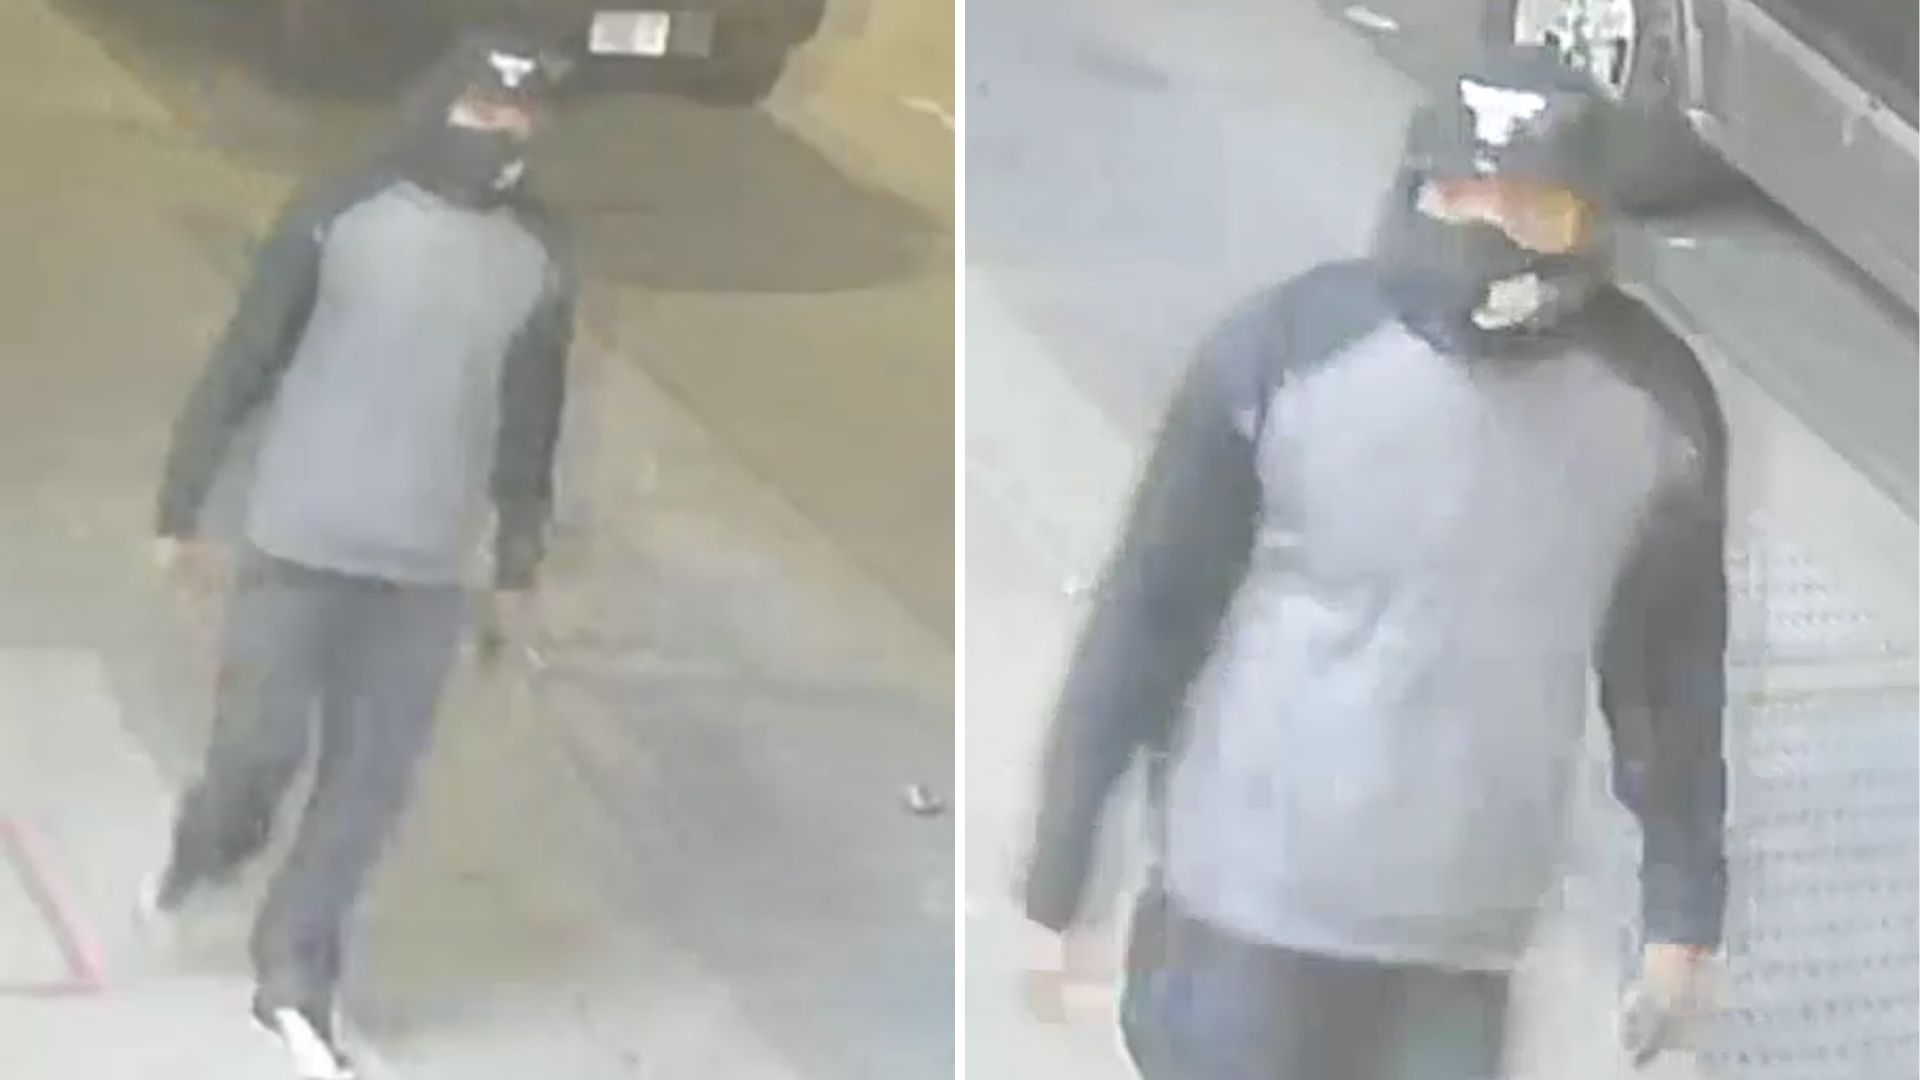 Surveillance images of a man police believe sexually assaulted a woman in Williamsburg, Brooklyn on April 19, 2021, the NYPD said.